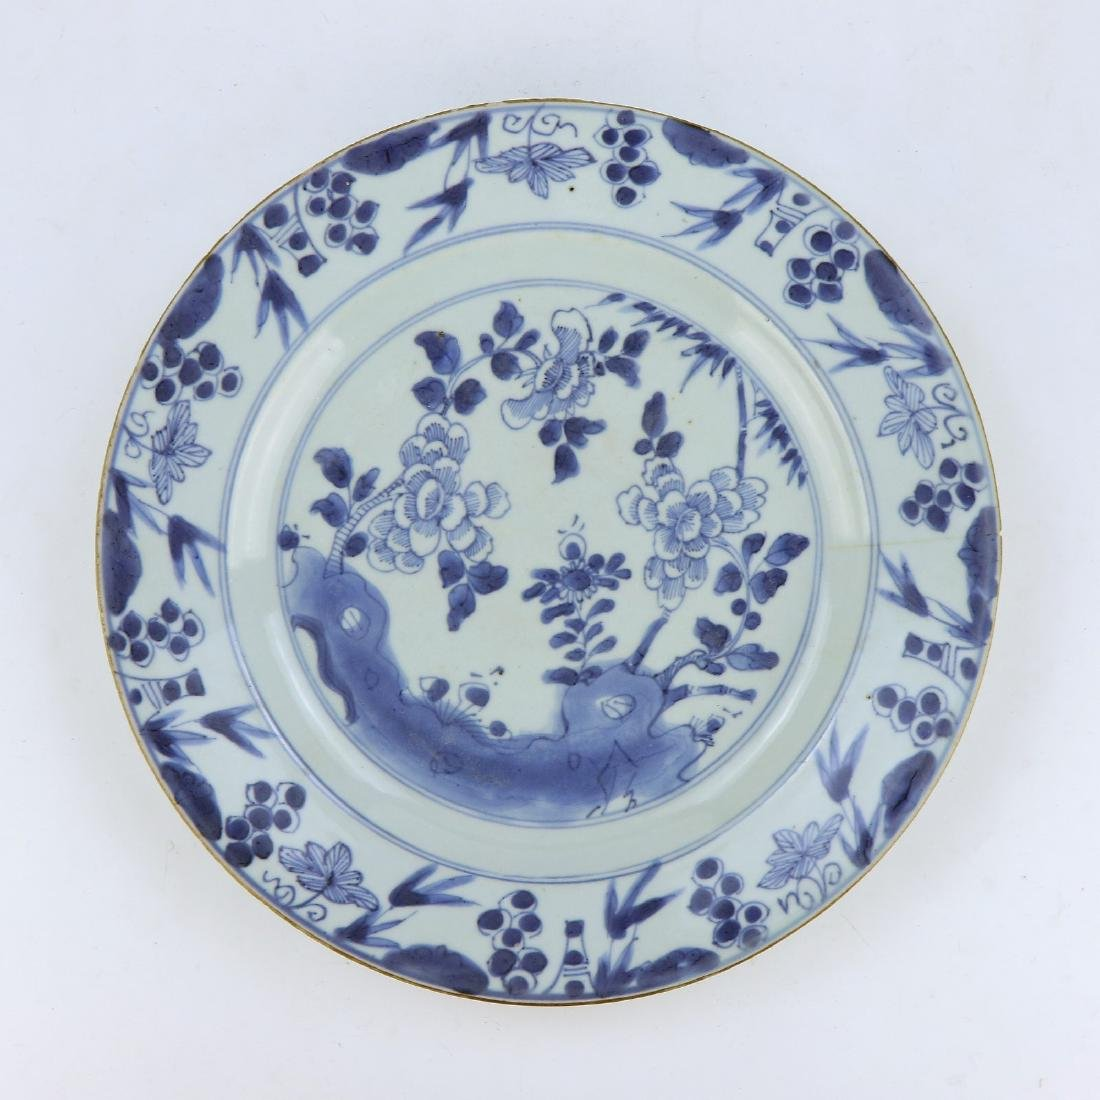 A BIG CHINESE BLUE & WHITE PORCELAIN PLATE